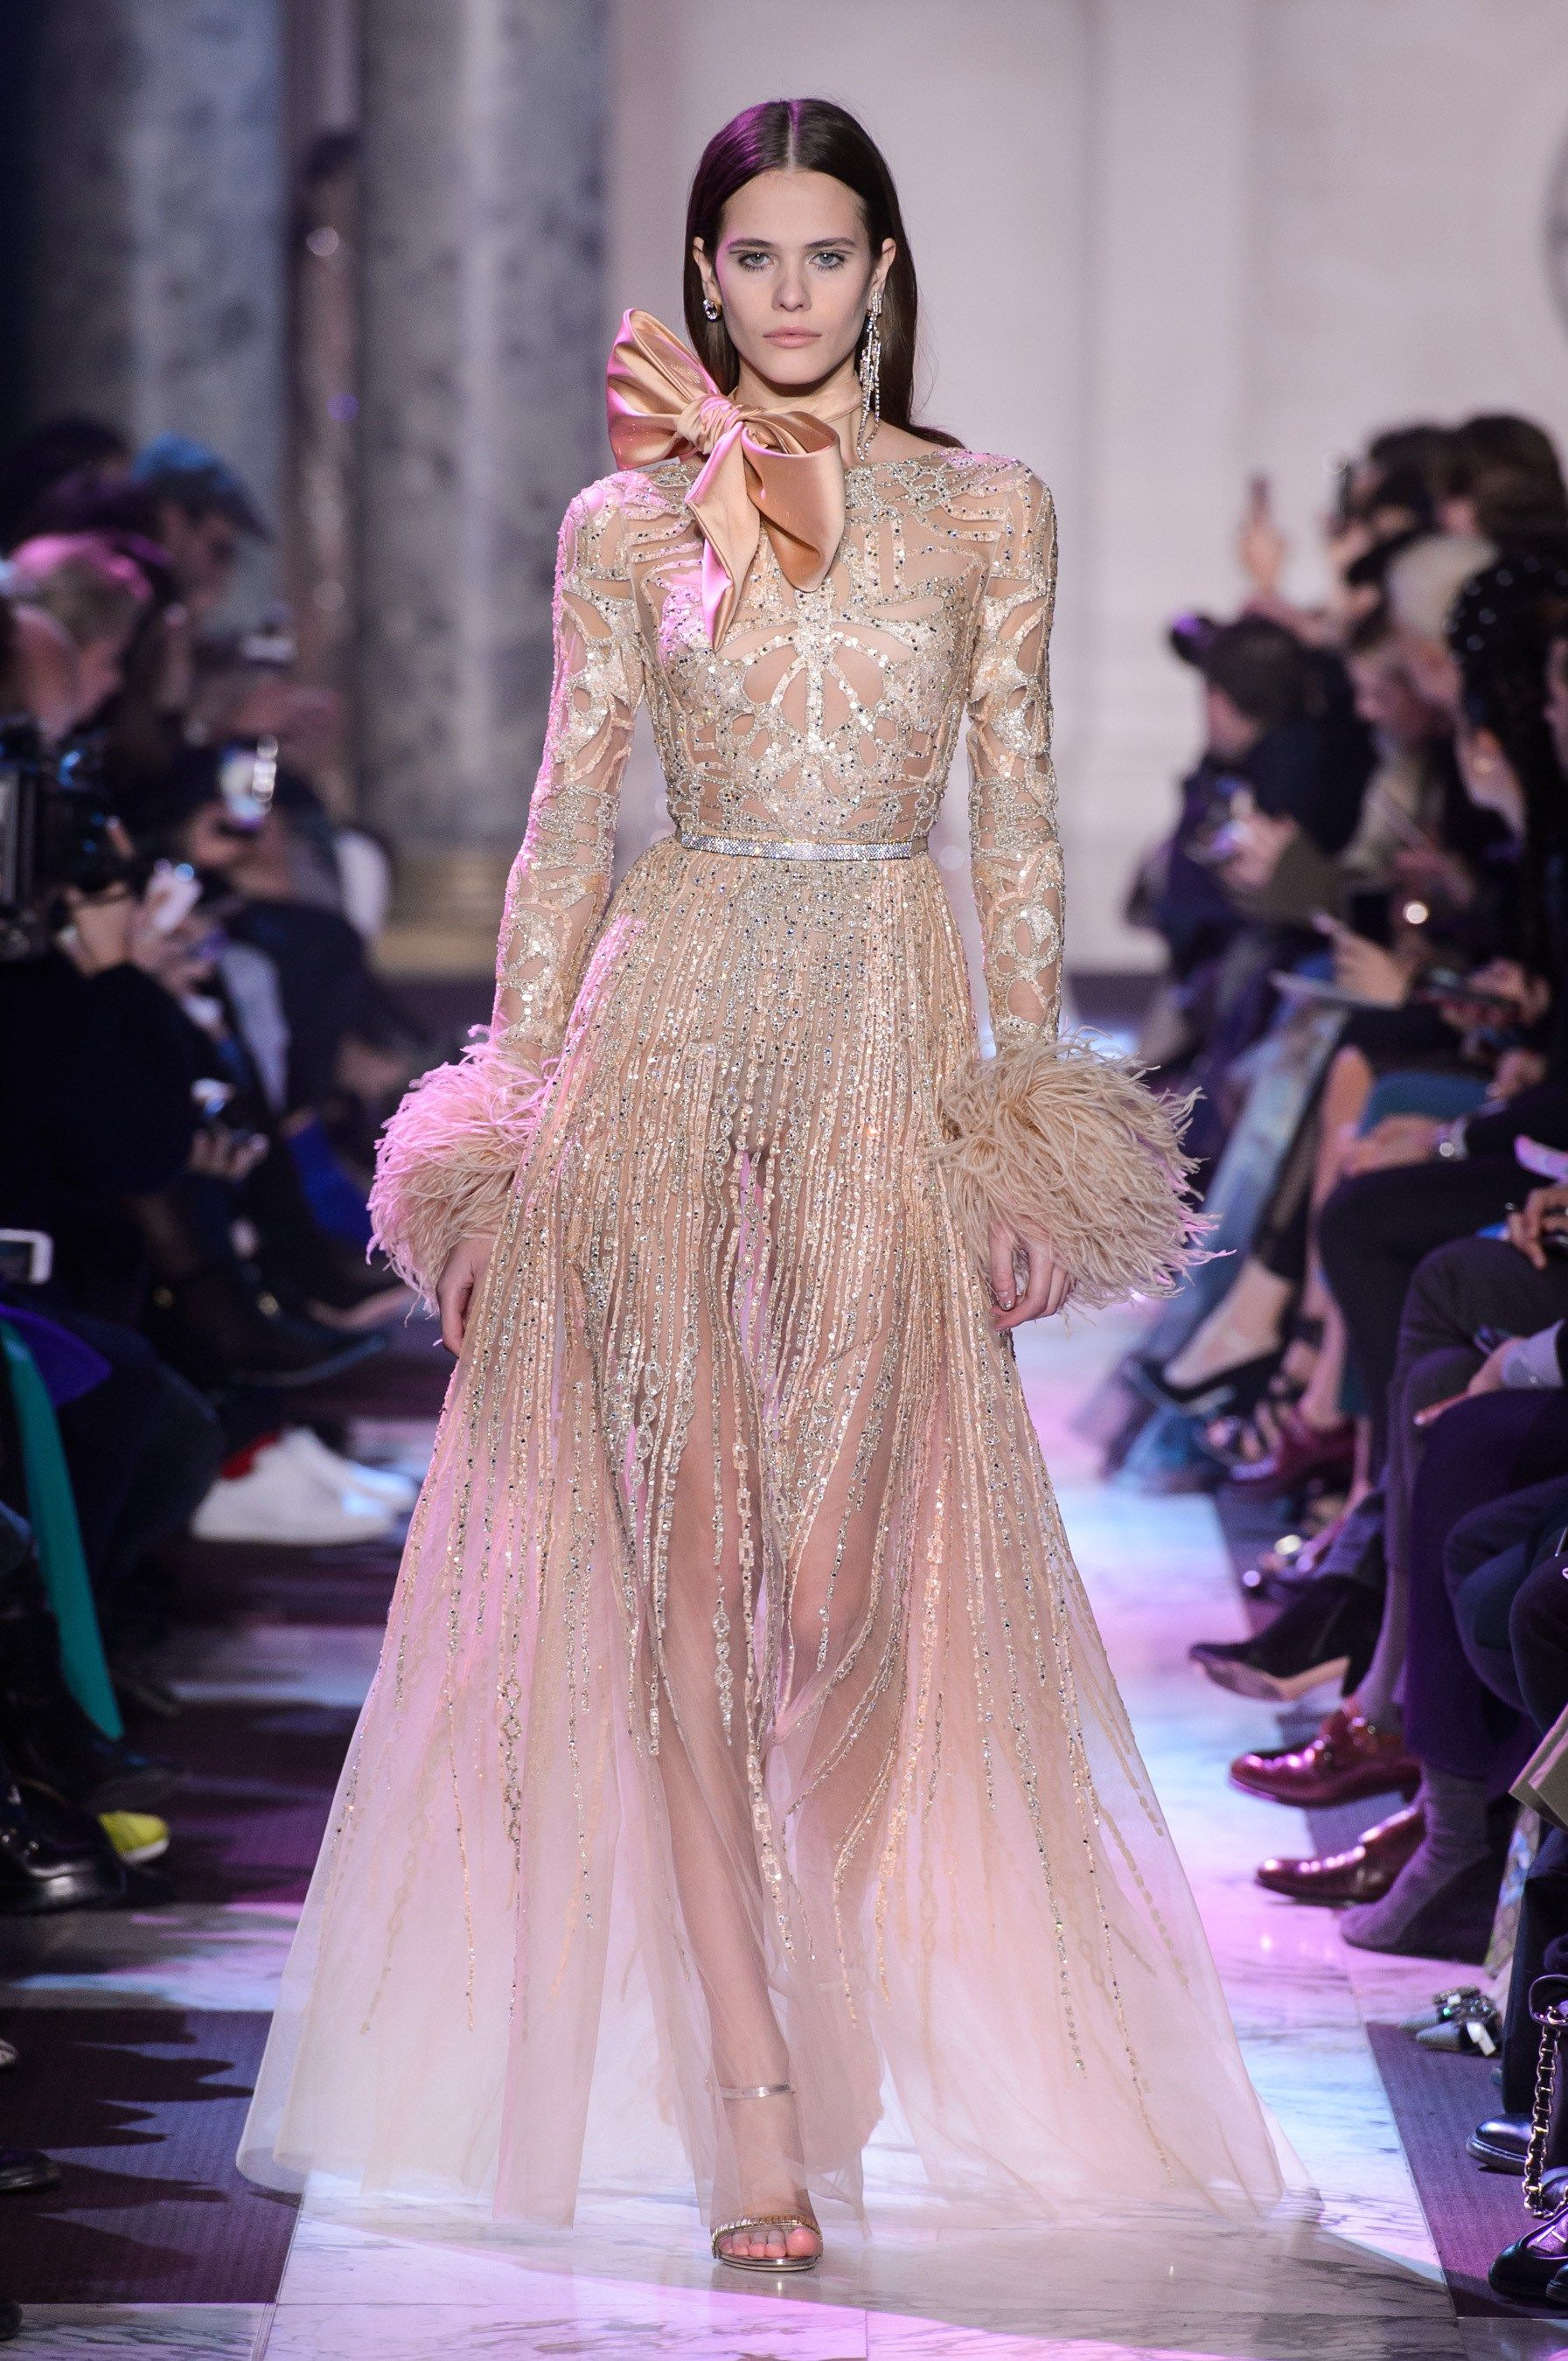 Elie Saab Spring 2018 Couture Fashion Show - The Impression   Runway ...